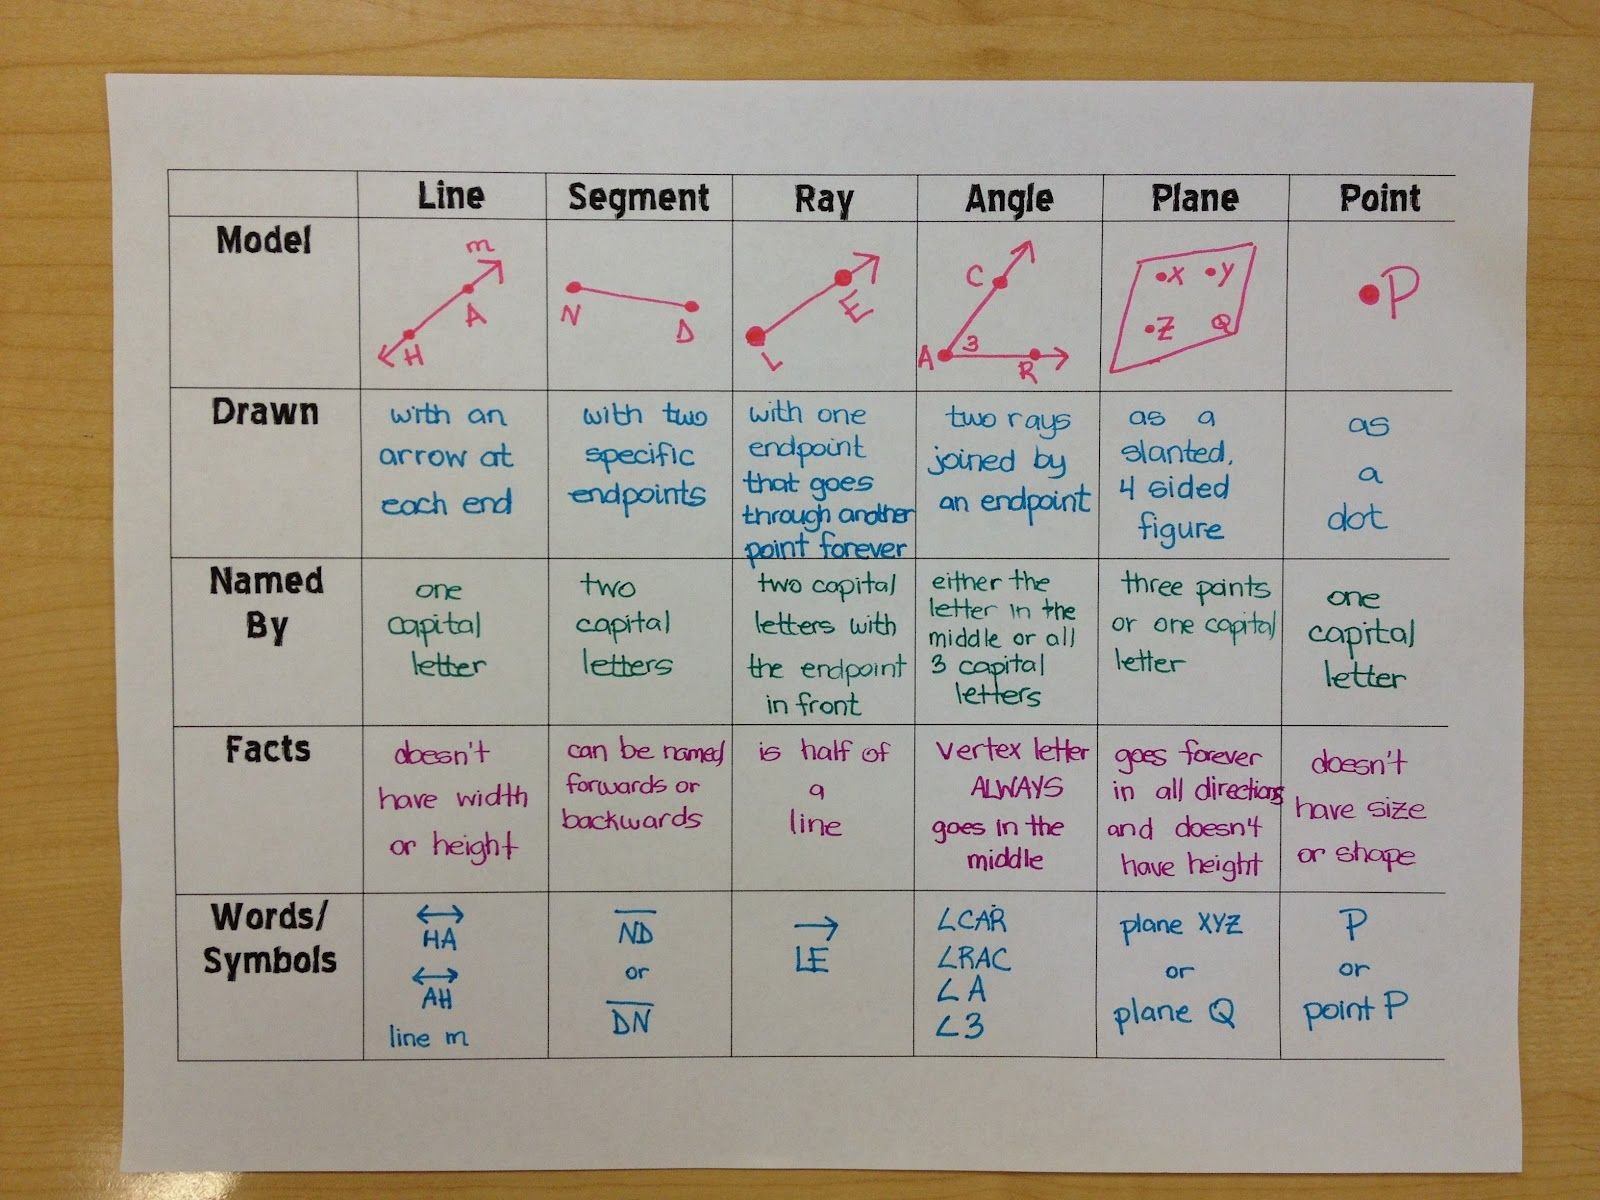 Line Segment Ray Angle Plane Point Graphic Organizer